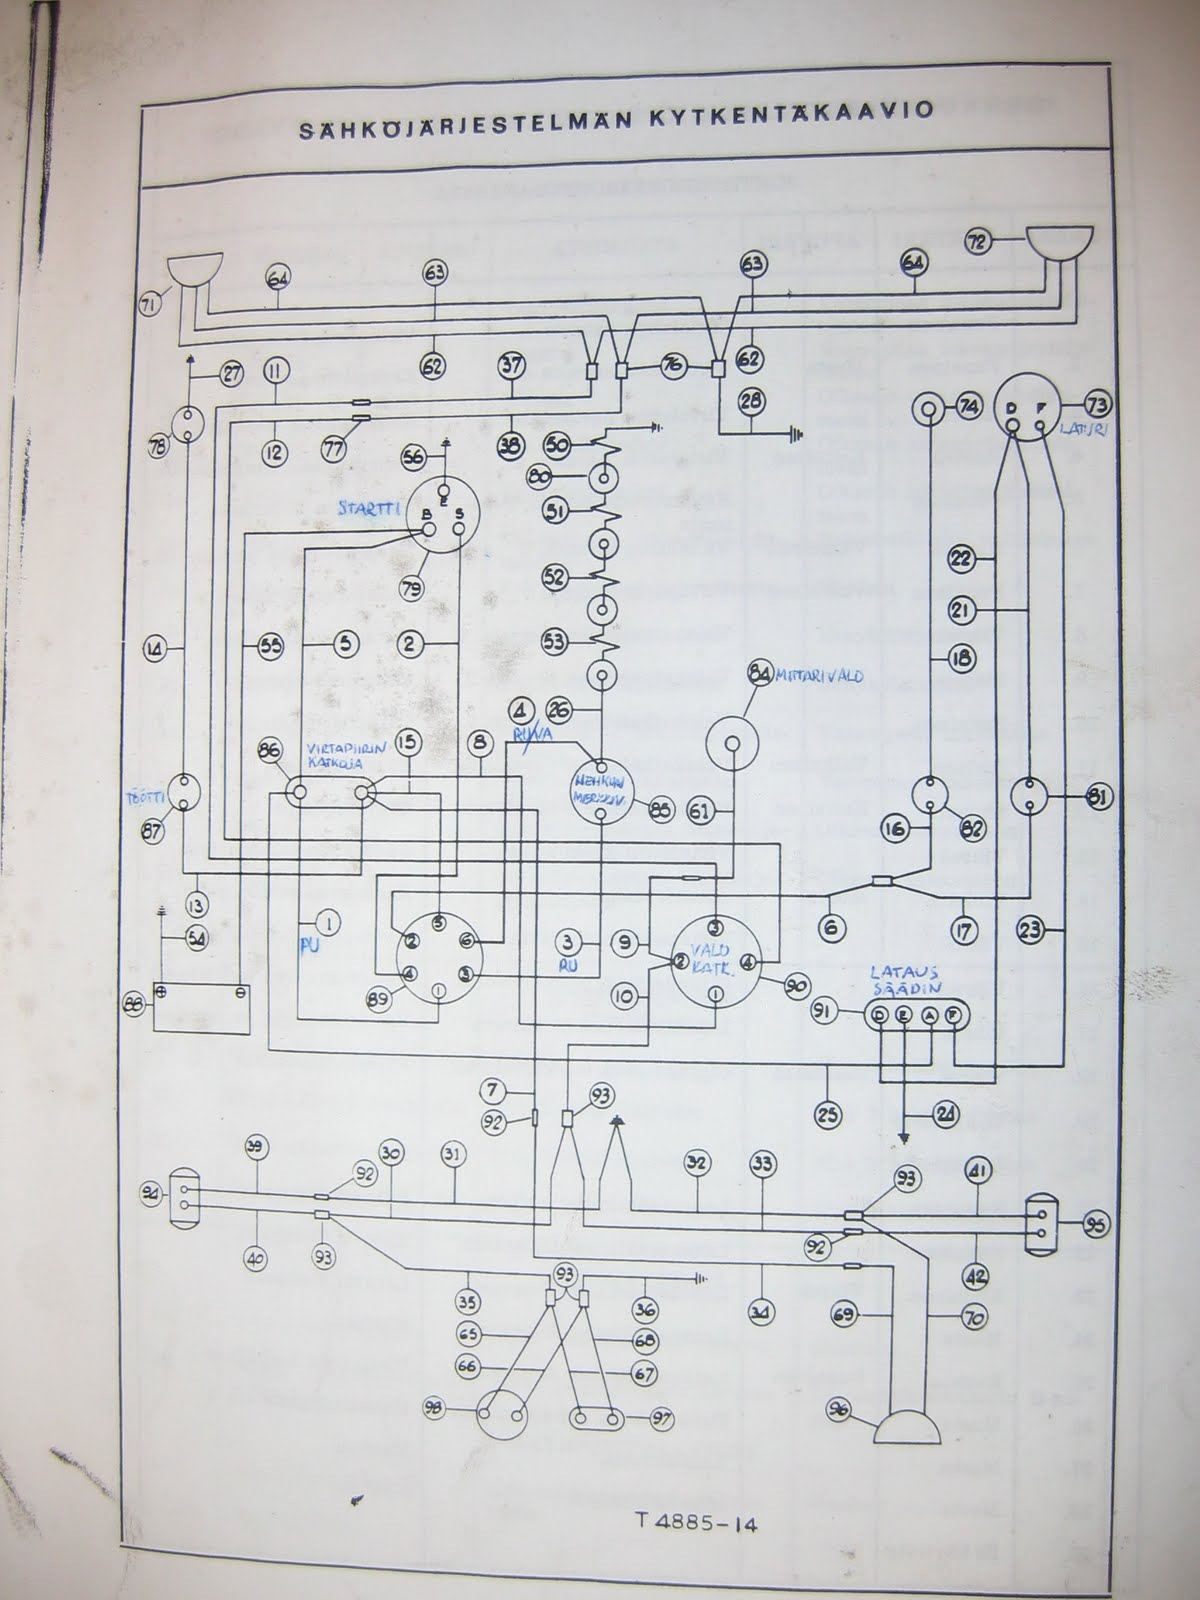 1086 International Harvester Wiring Diagram Hessublog Natikan Manuaali